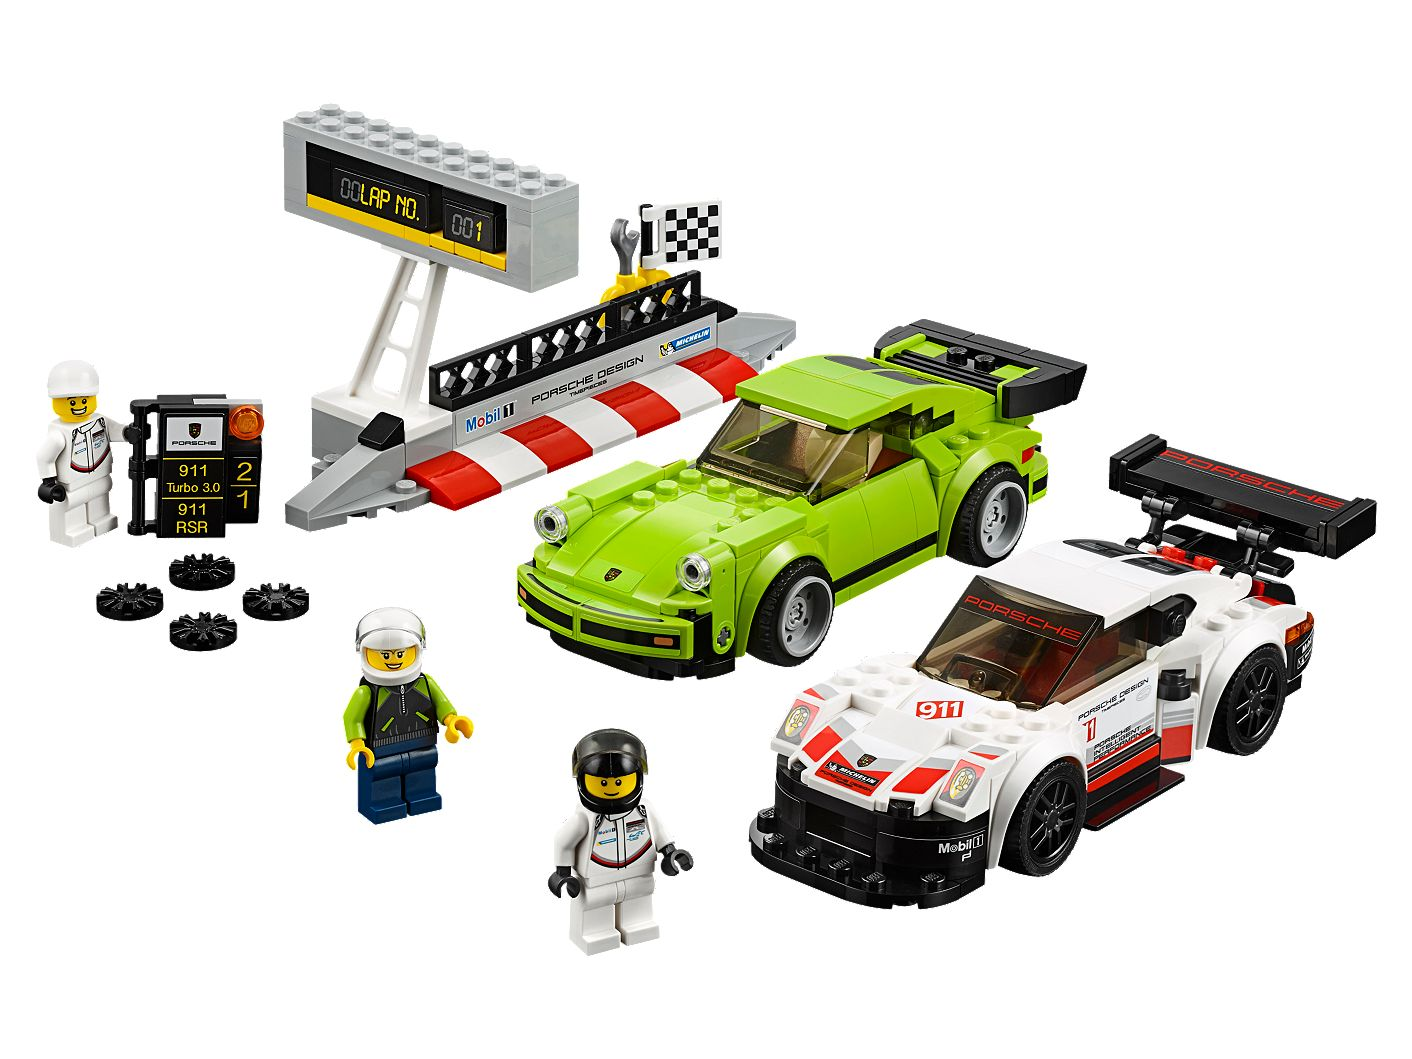 porsche 911 rsr and 911 turbo 3 0 75888 speed champions buy online at the official lego shop us. Black Bedroom Furniture Sets. Home Design Ideas